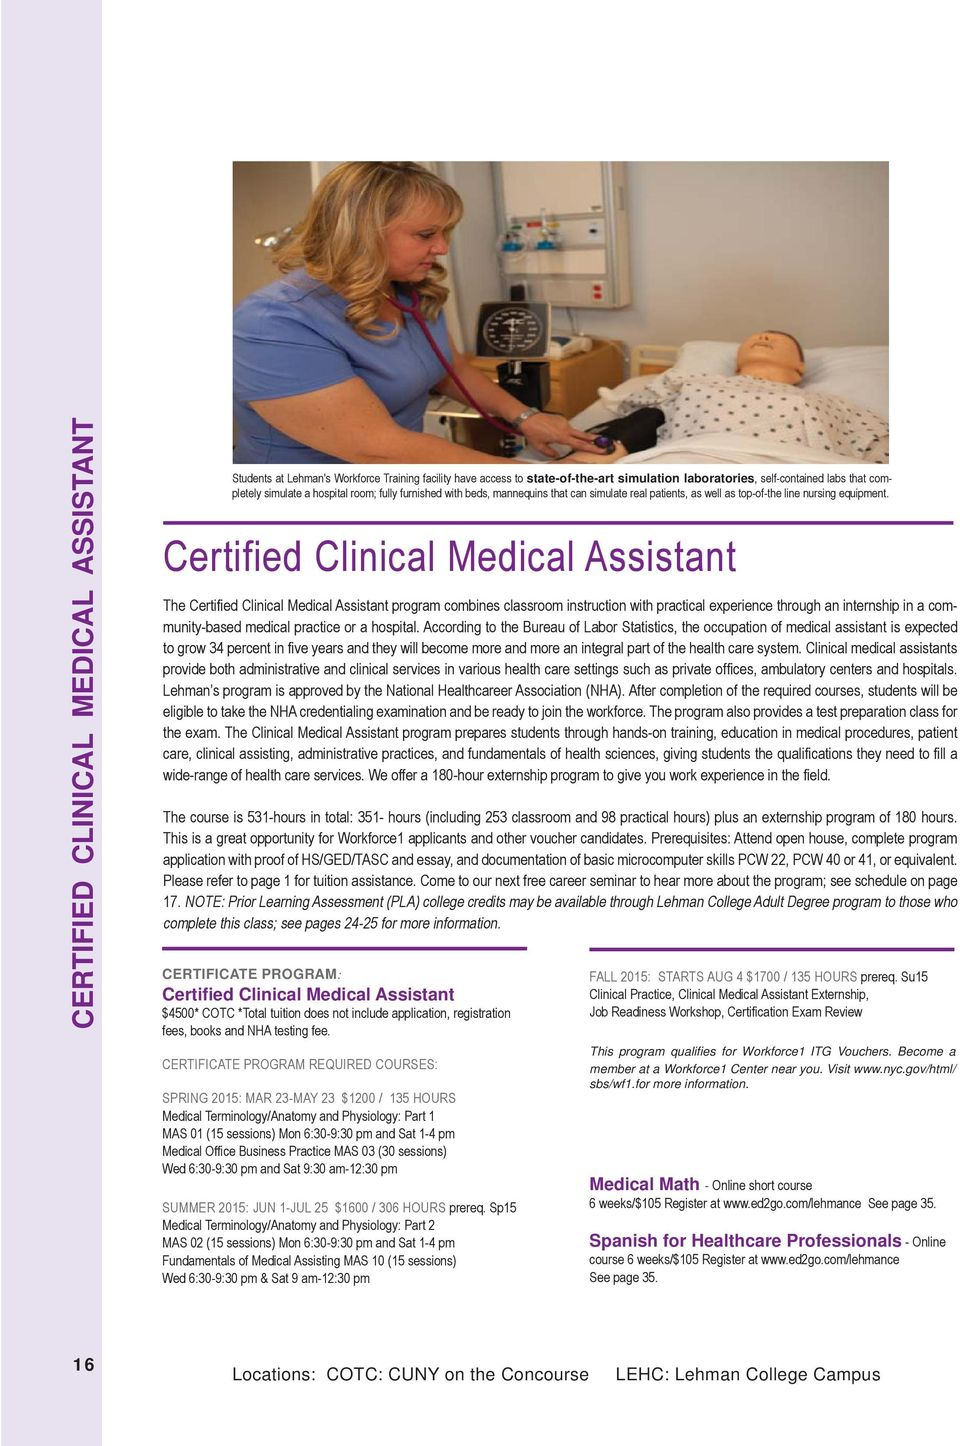 Certified Clinical Medical Assistant The Certified Clinical Medical Assistant program combines classroom instruction with practical experience through an internship in a community-based medical